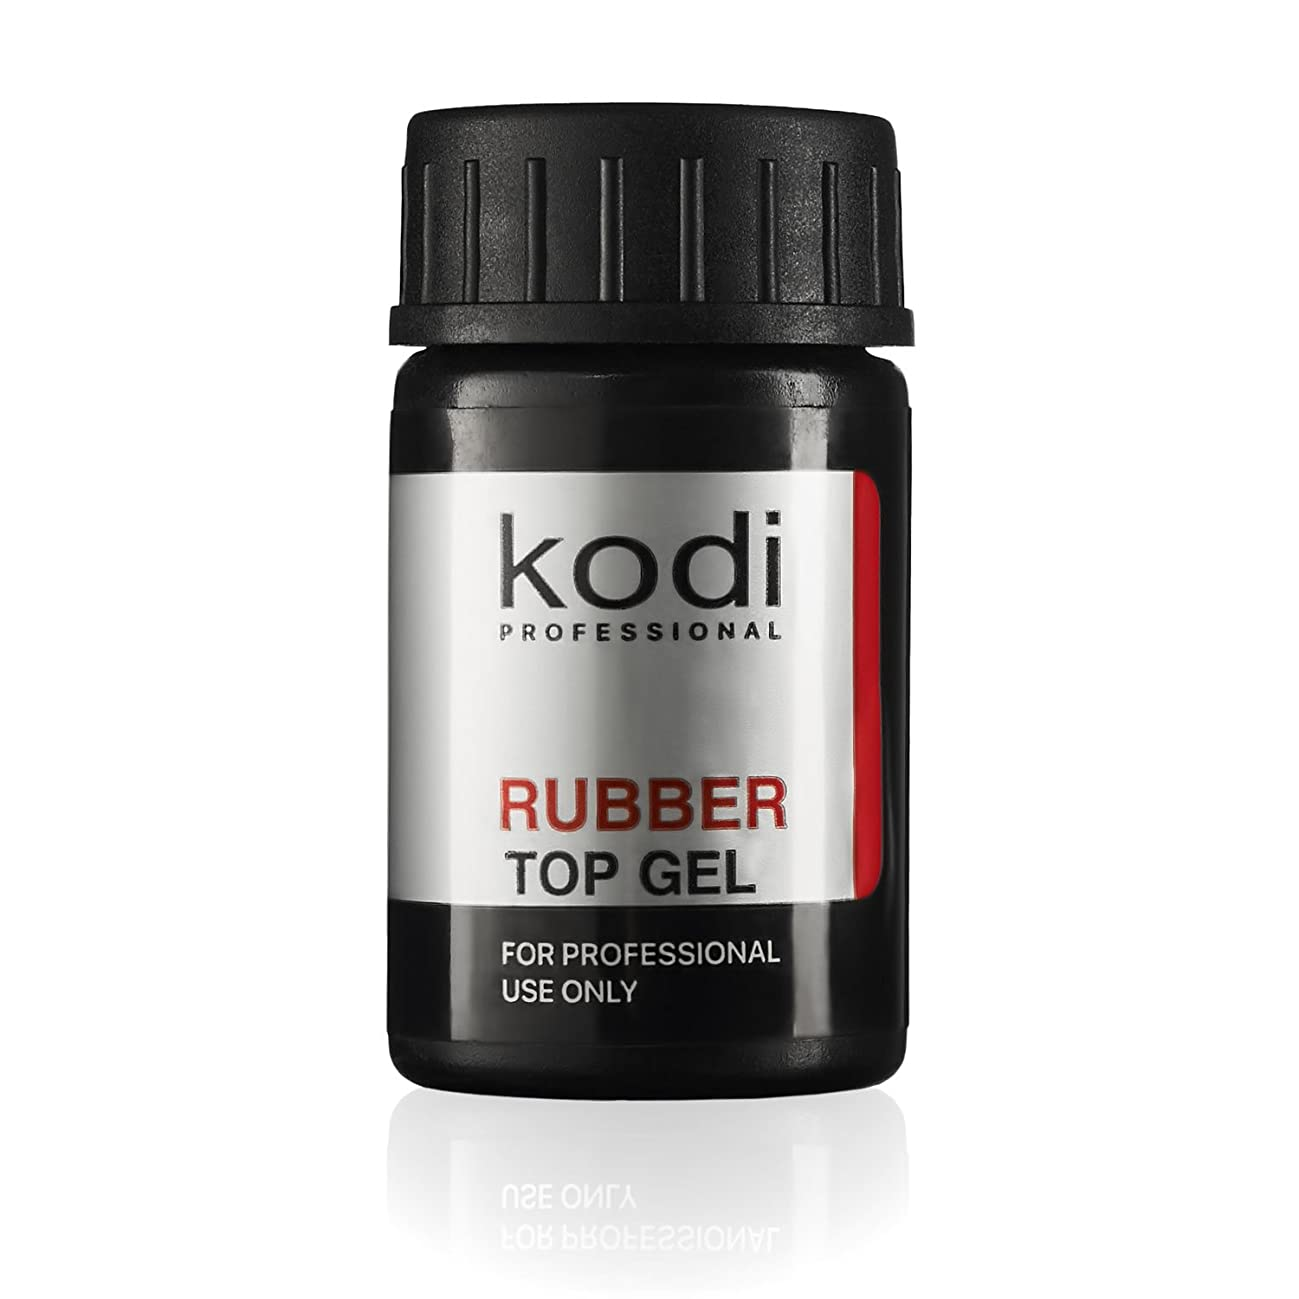 絶縁する汚れる感度Professional Rubber Top Gel By Kodi | Soak Off, Polish Fingernails Coat Gel | For Long Lasting Nails Layer | Easy To Use, Non-Toxic & Scentless | Cure Under LED Or UV Lamp | 14ml 0.49 oz